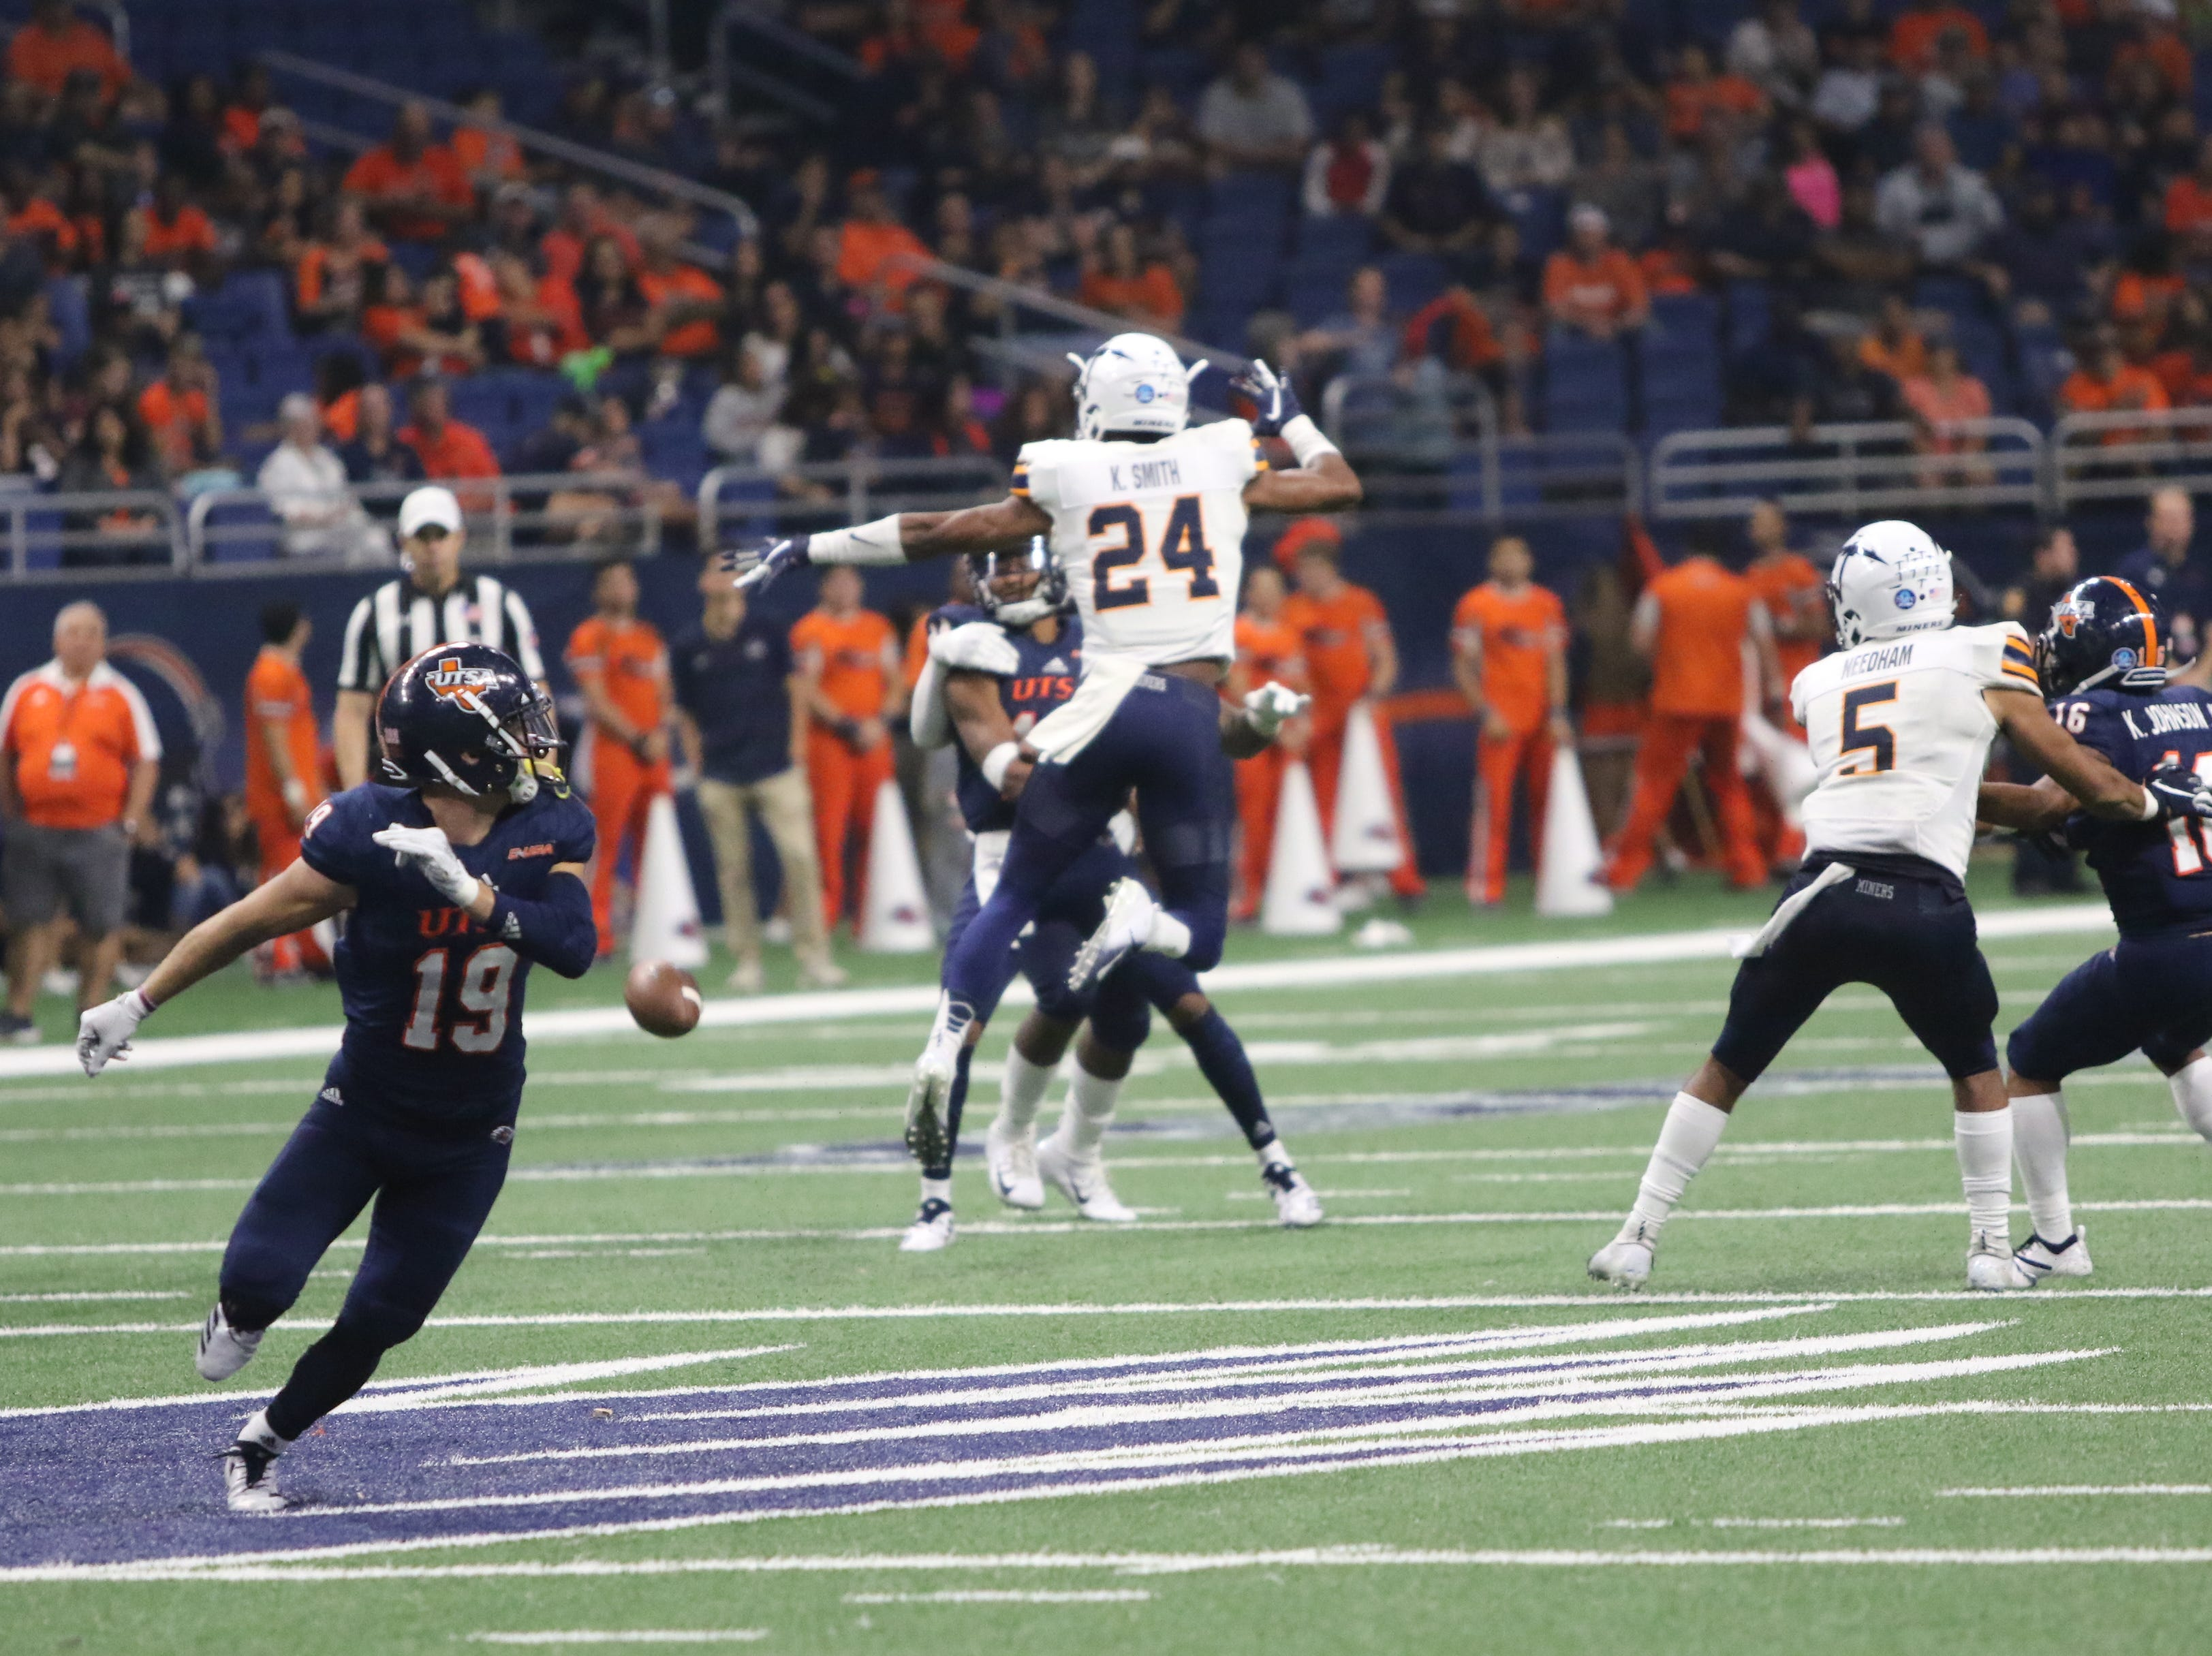 UTSA held off a late UTEP rally, and the Roadrunners beat the Miners 30-21 in San Antonio.